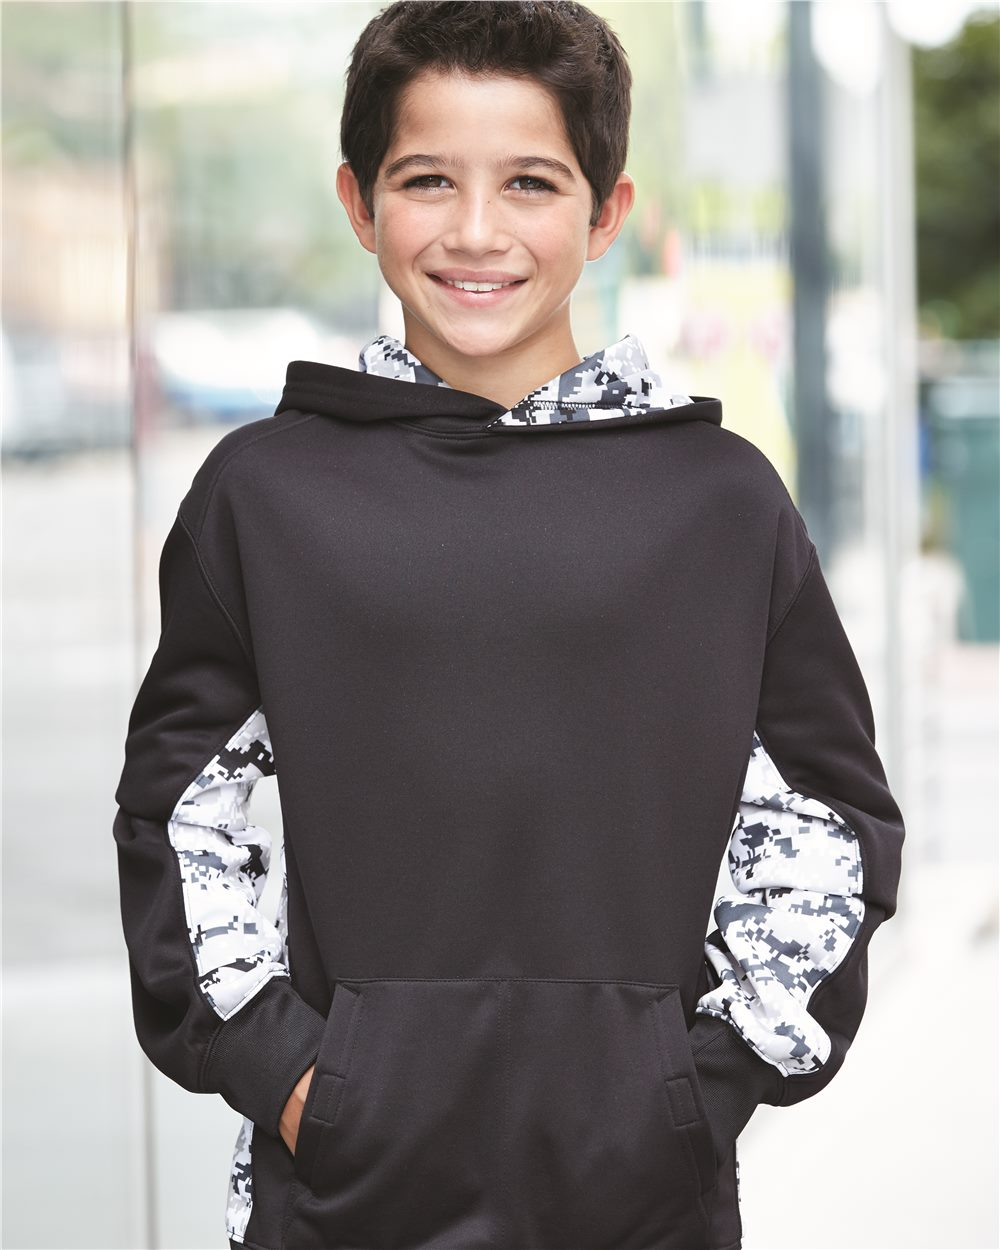 Badger 2464 - Digital Camo Youth Colorblock Performance Fleece Hooded Sweatshirt